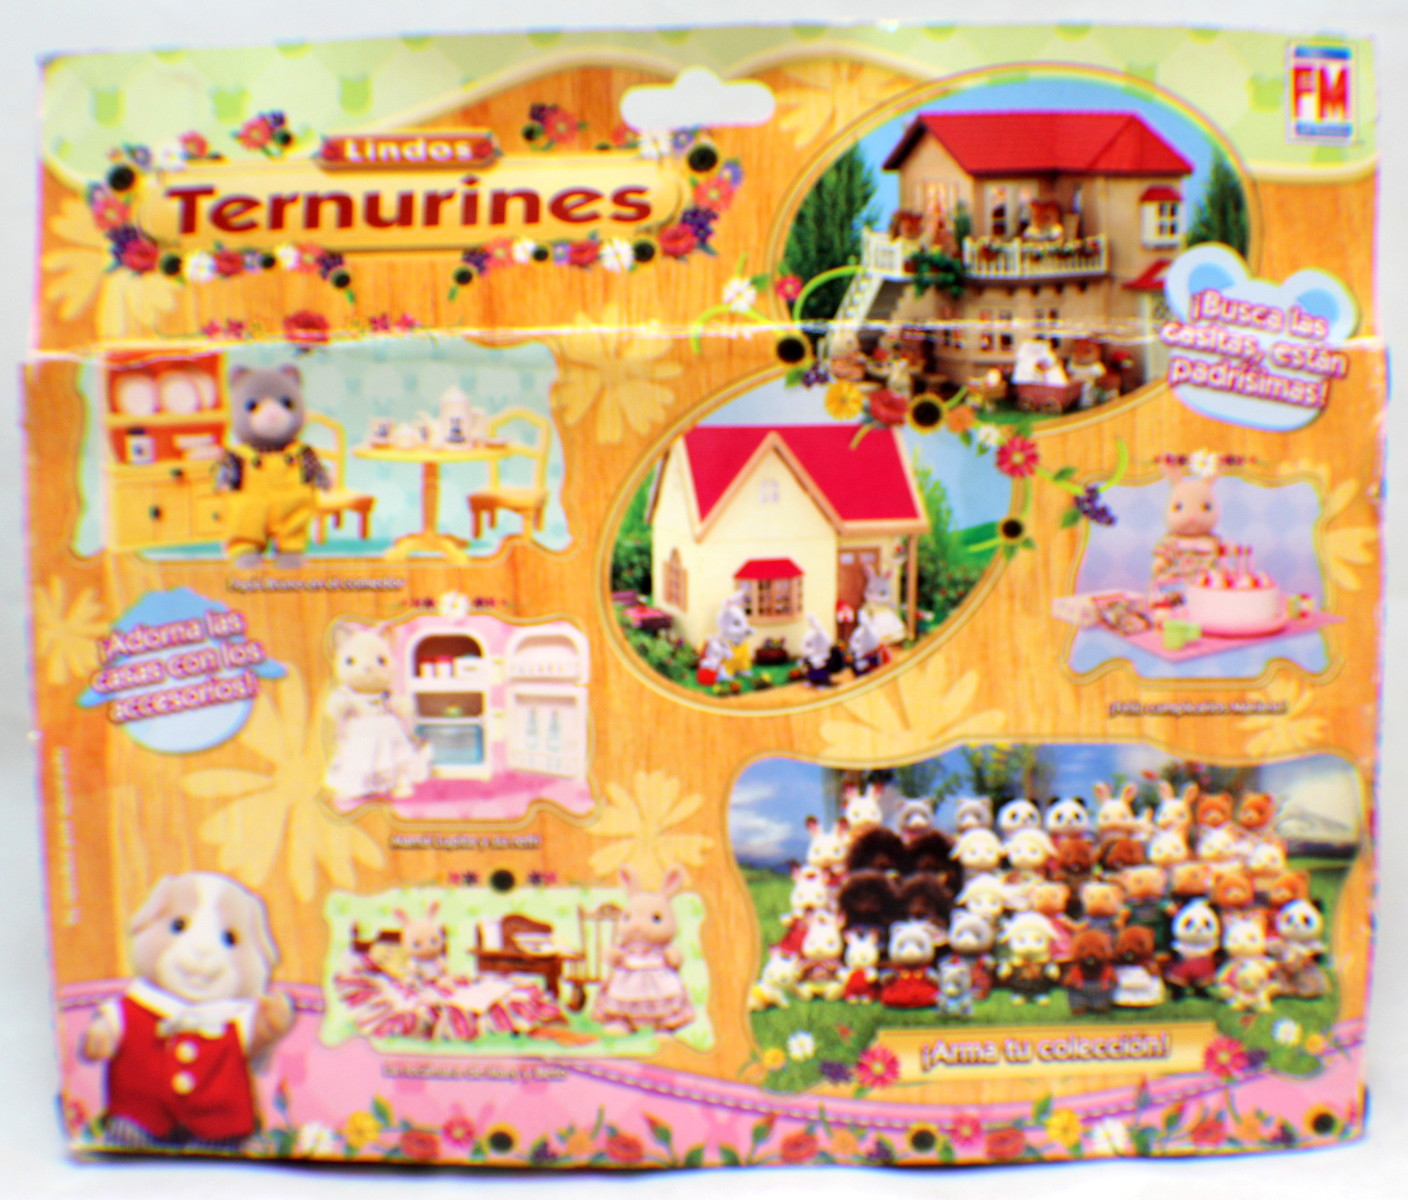 ... Sylvanian Families Kittens Cat Ternurines Living Room Set Rare Mexican  Packaging Part 55